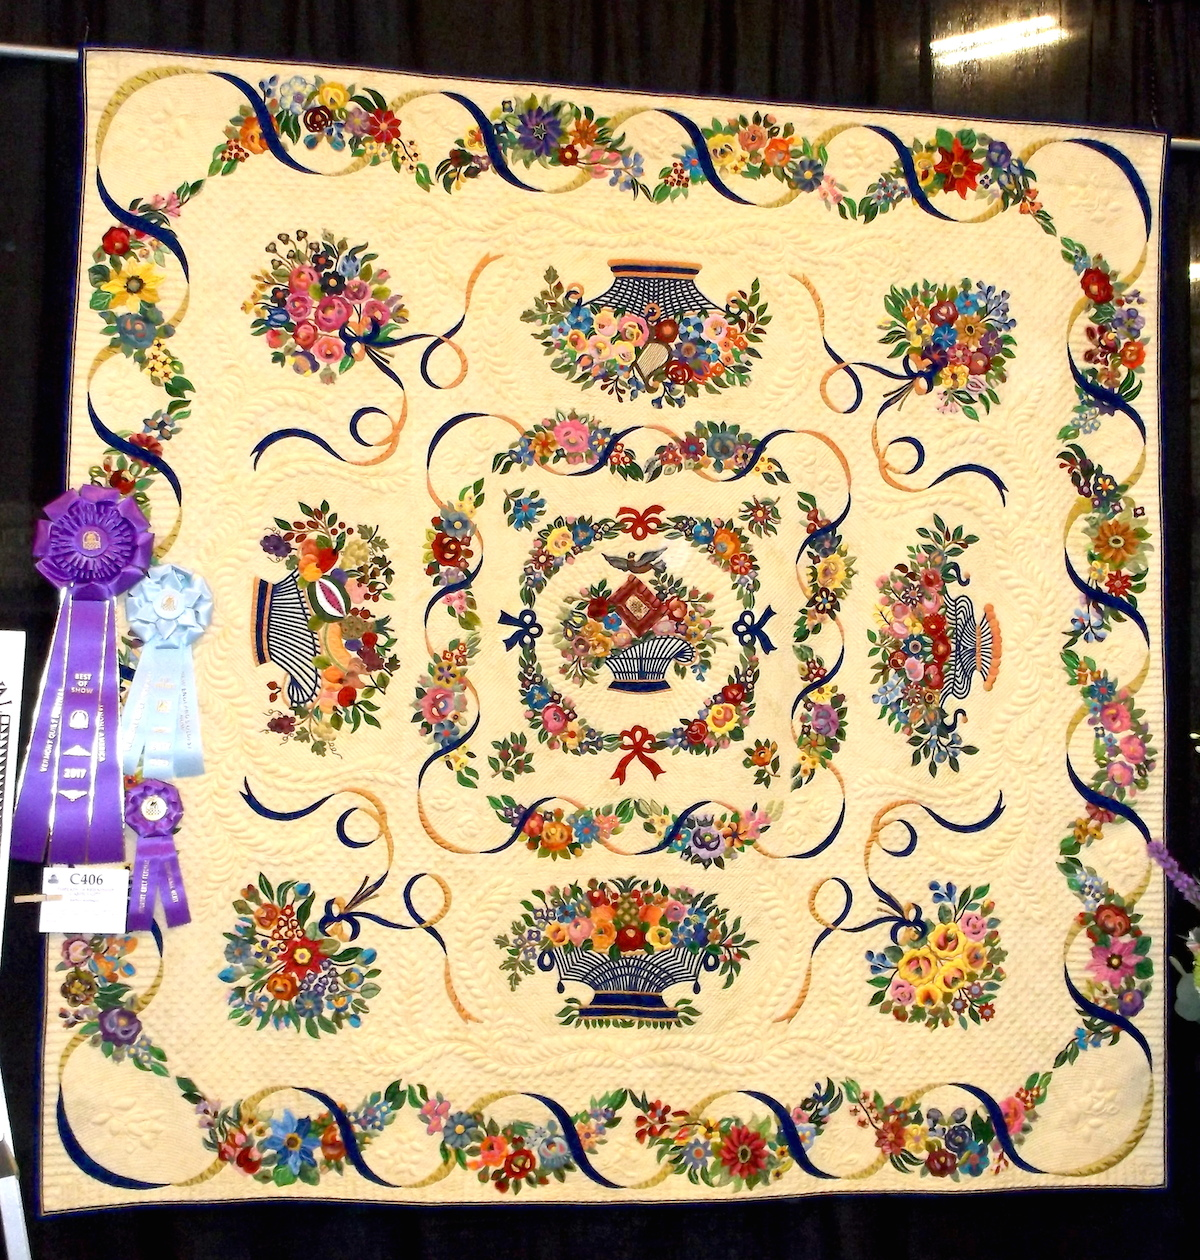 Eyelets in the Seams: Fun at the Vermont Quilt Festival 2017 : vermont quilt festival - Adamdwight.com